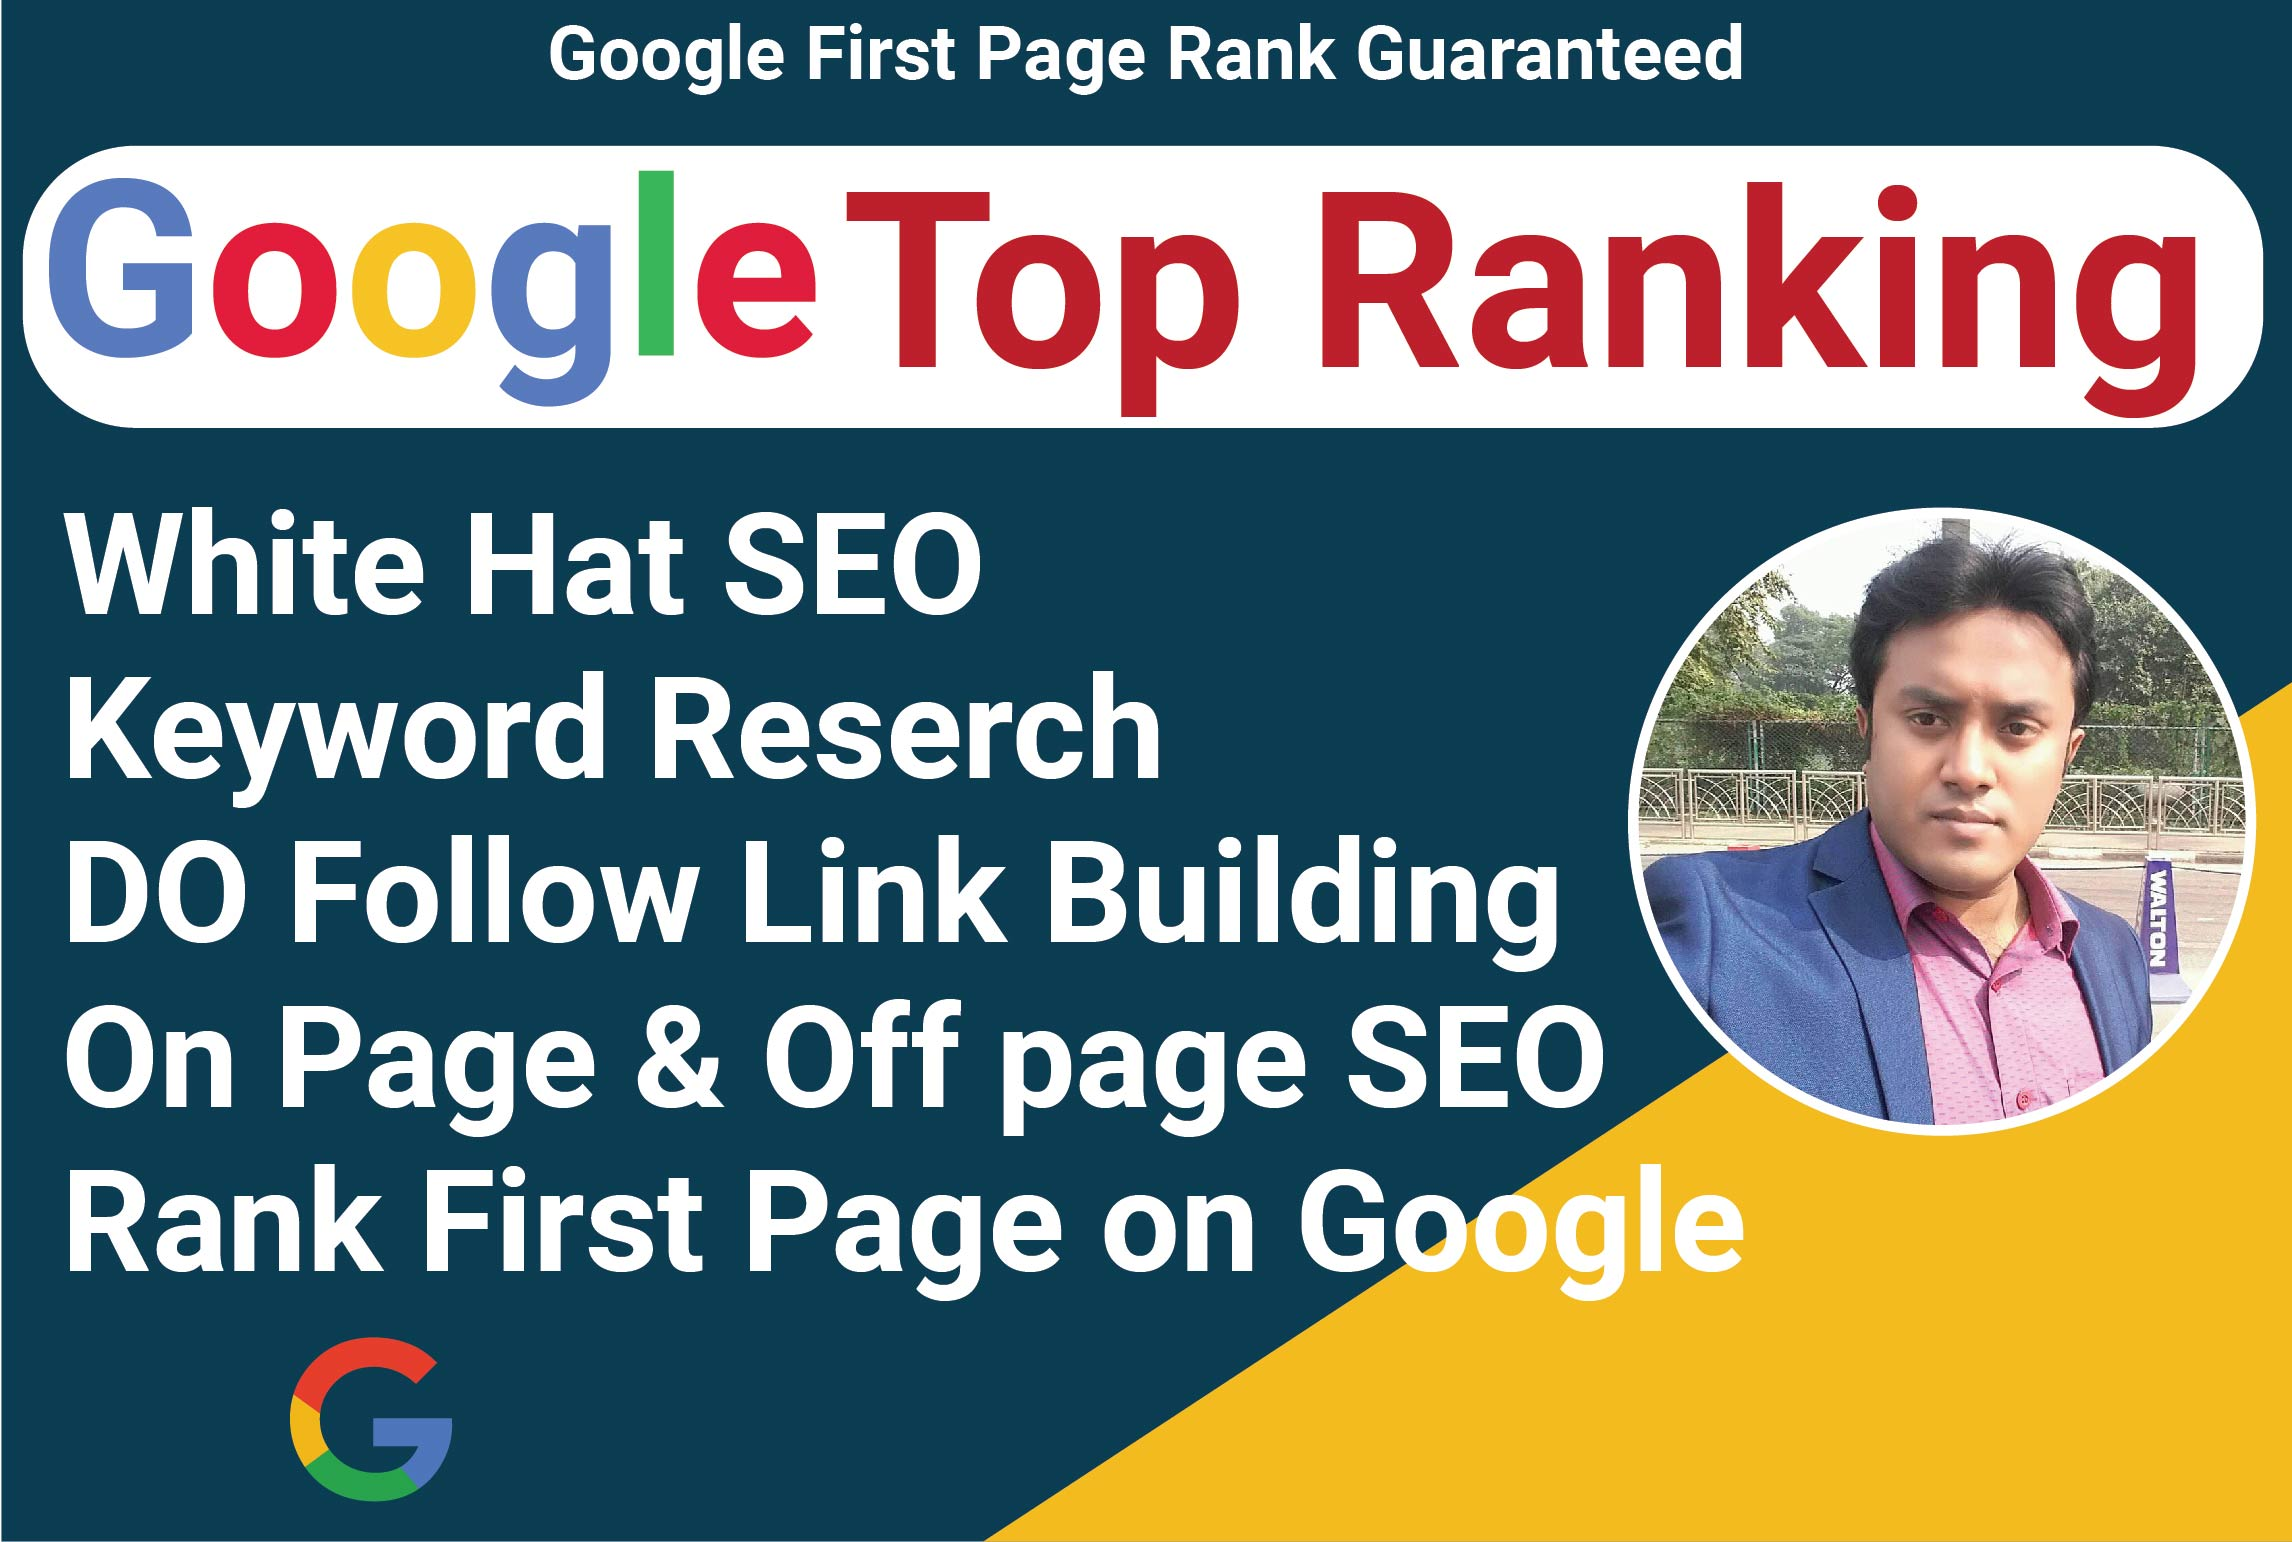 SEO Service for Google Top Ranking